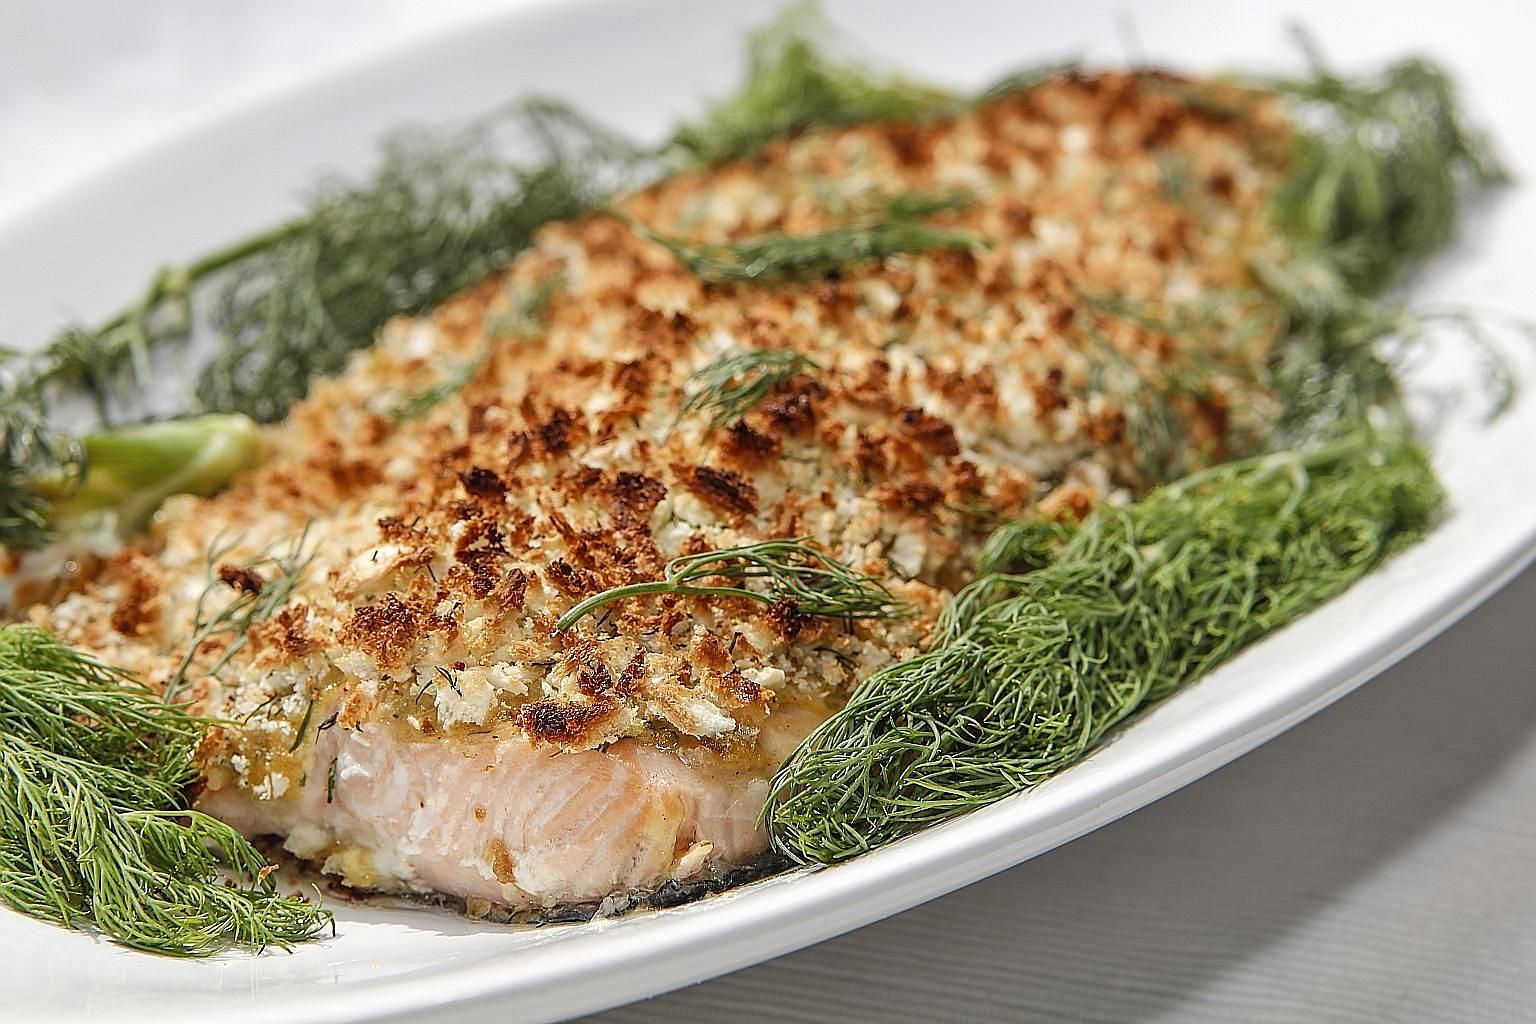 Baked salmon with a dill-and-breadcrumb topping will whet appetites.